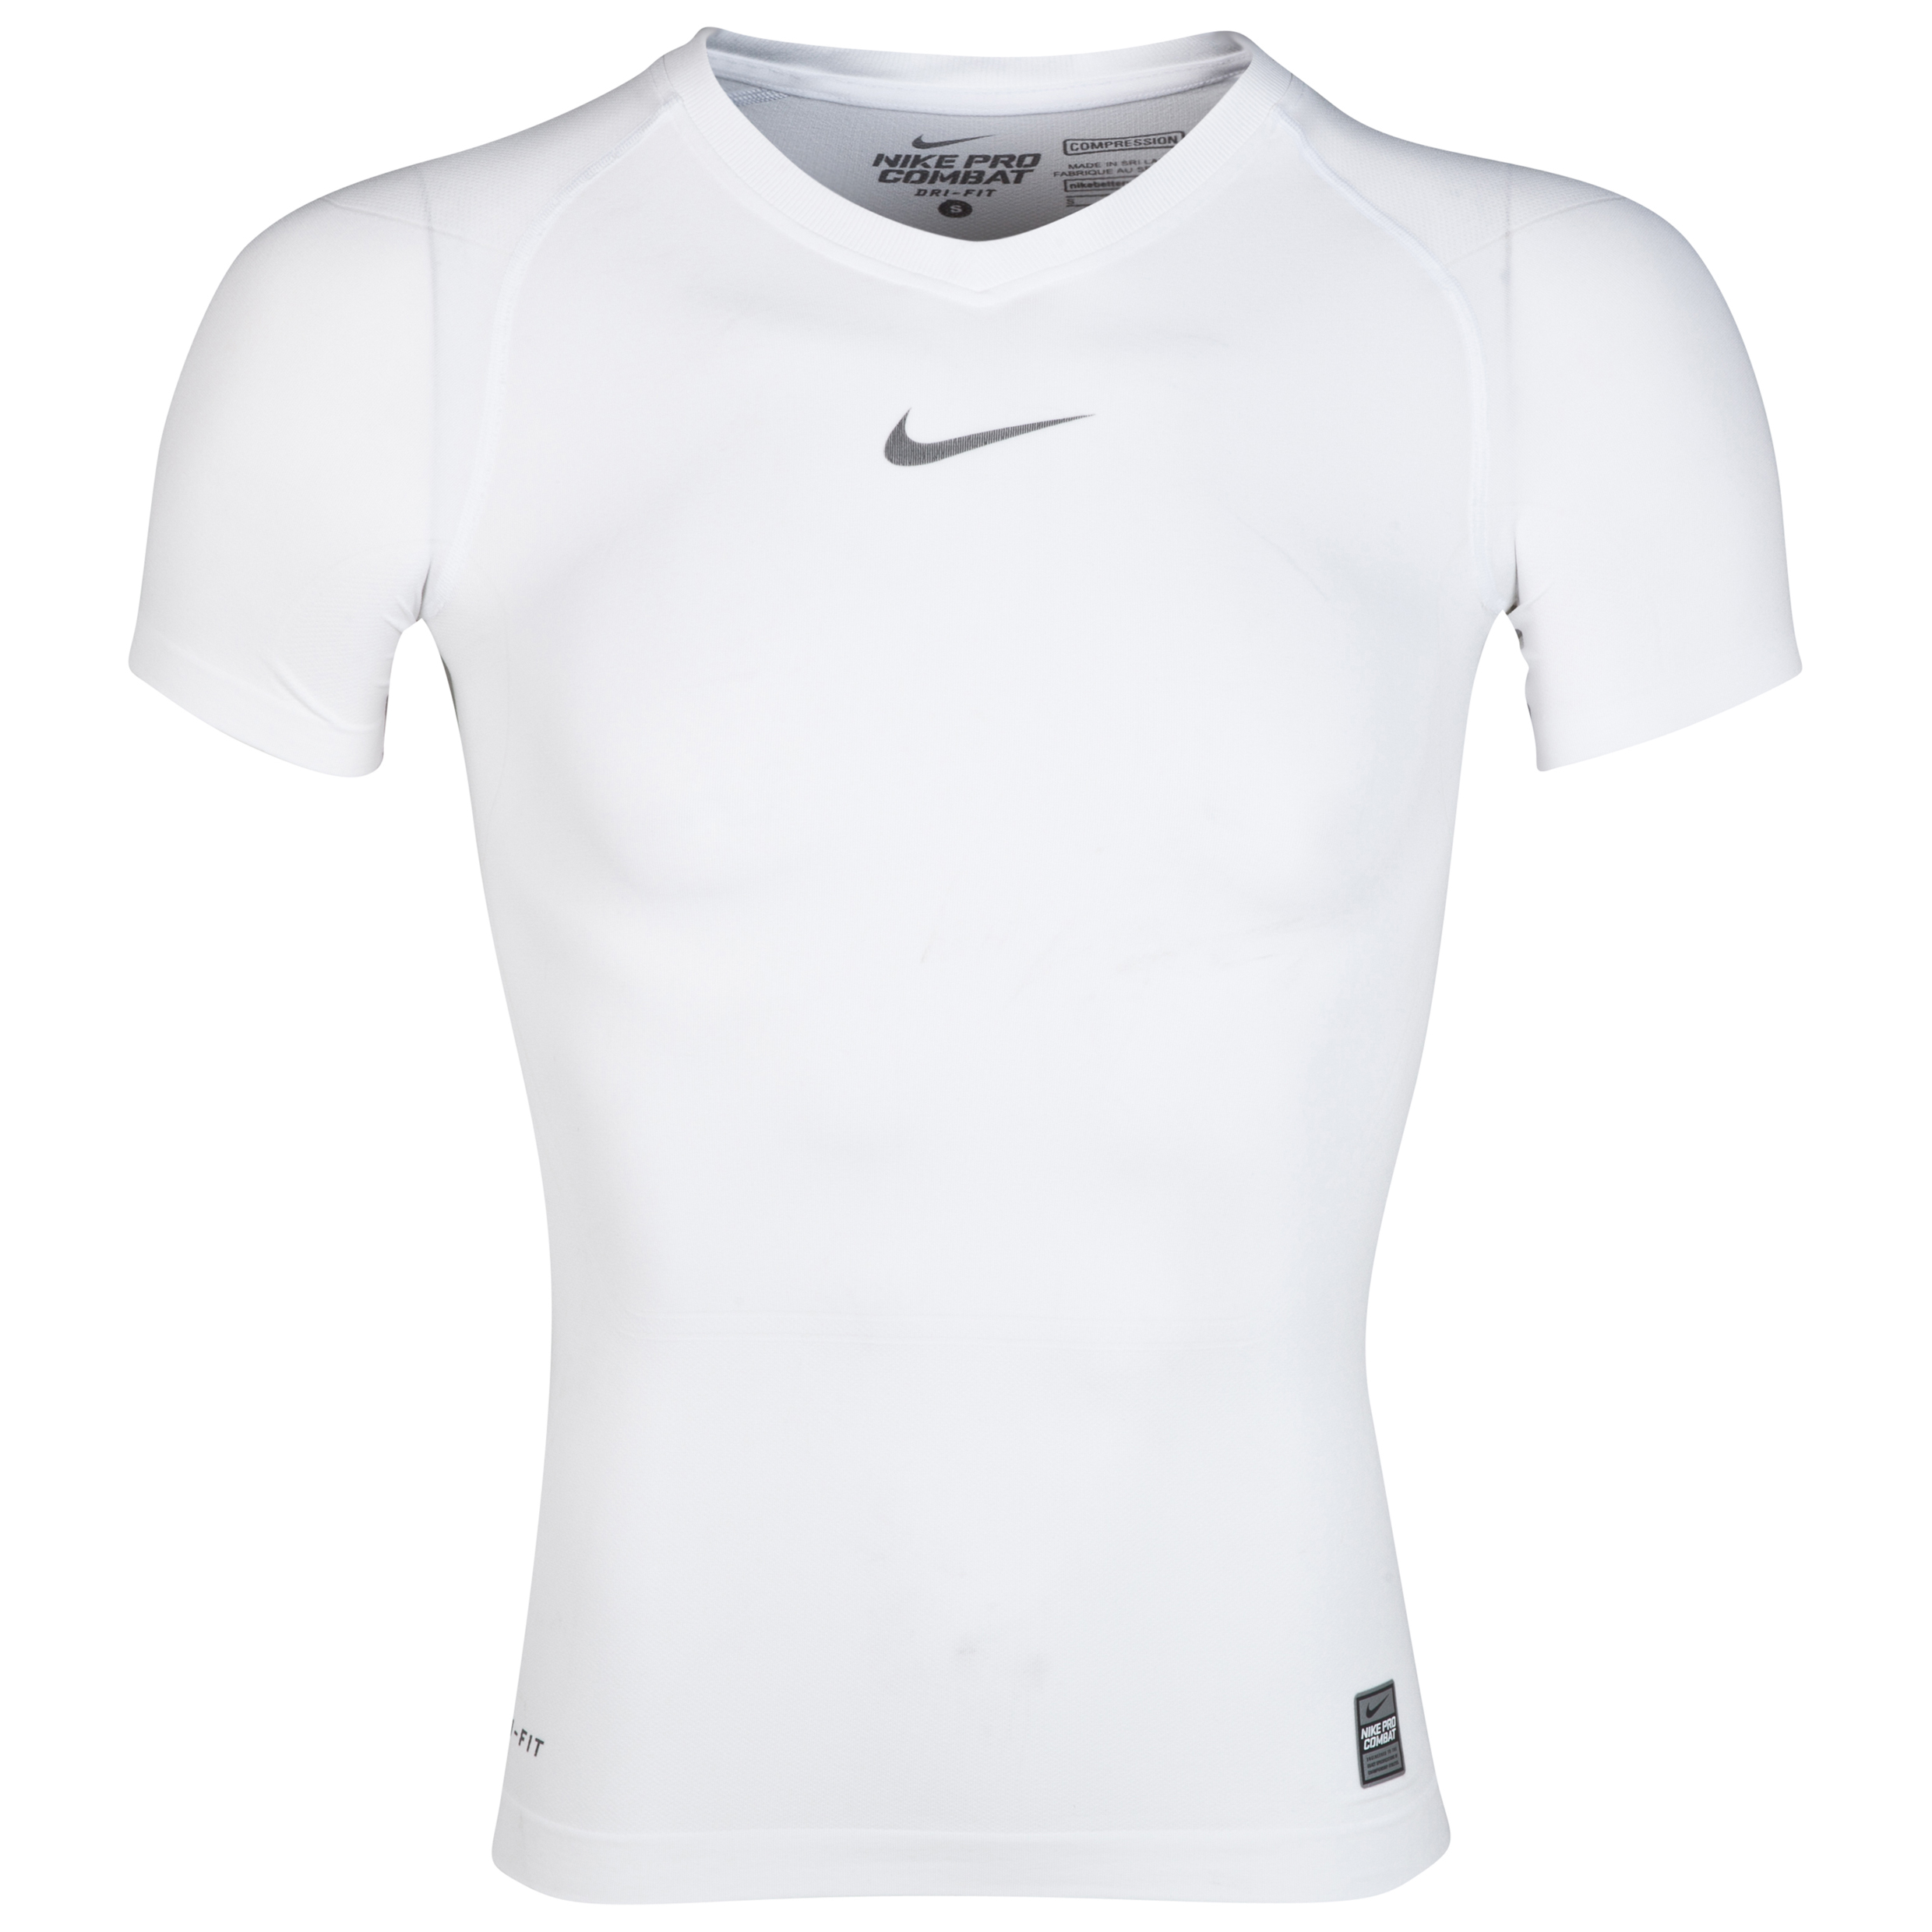 Nike Pro Combat Lightweight Seamless Base Layer Top White